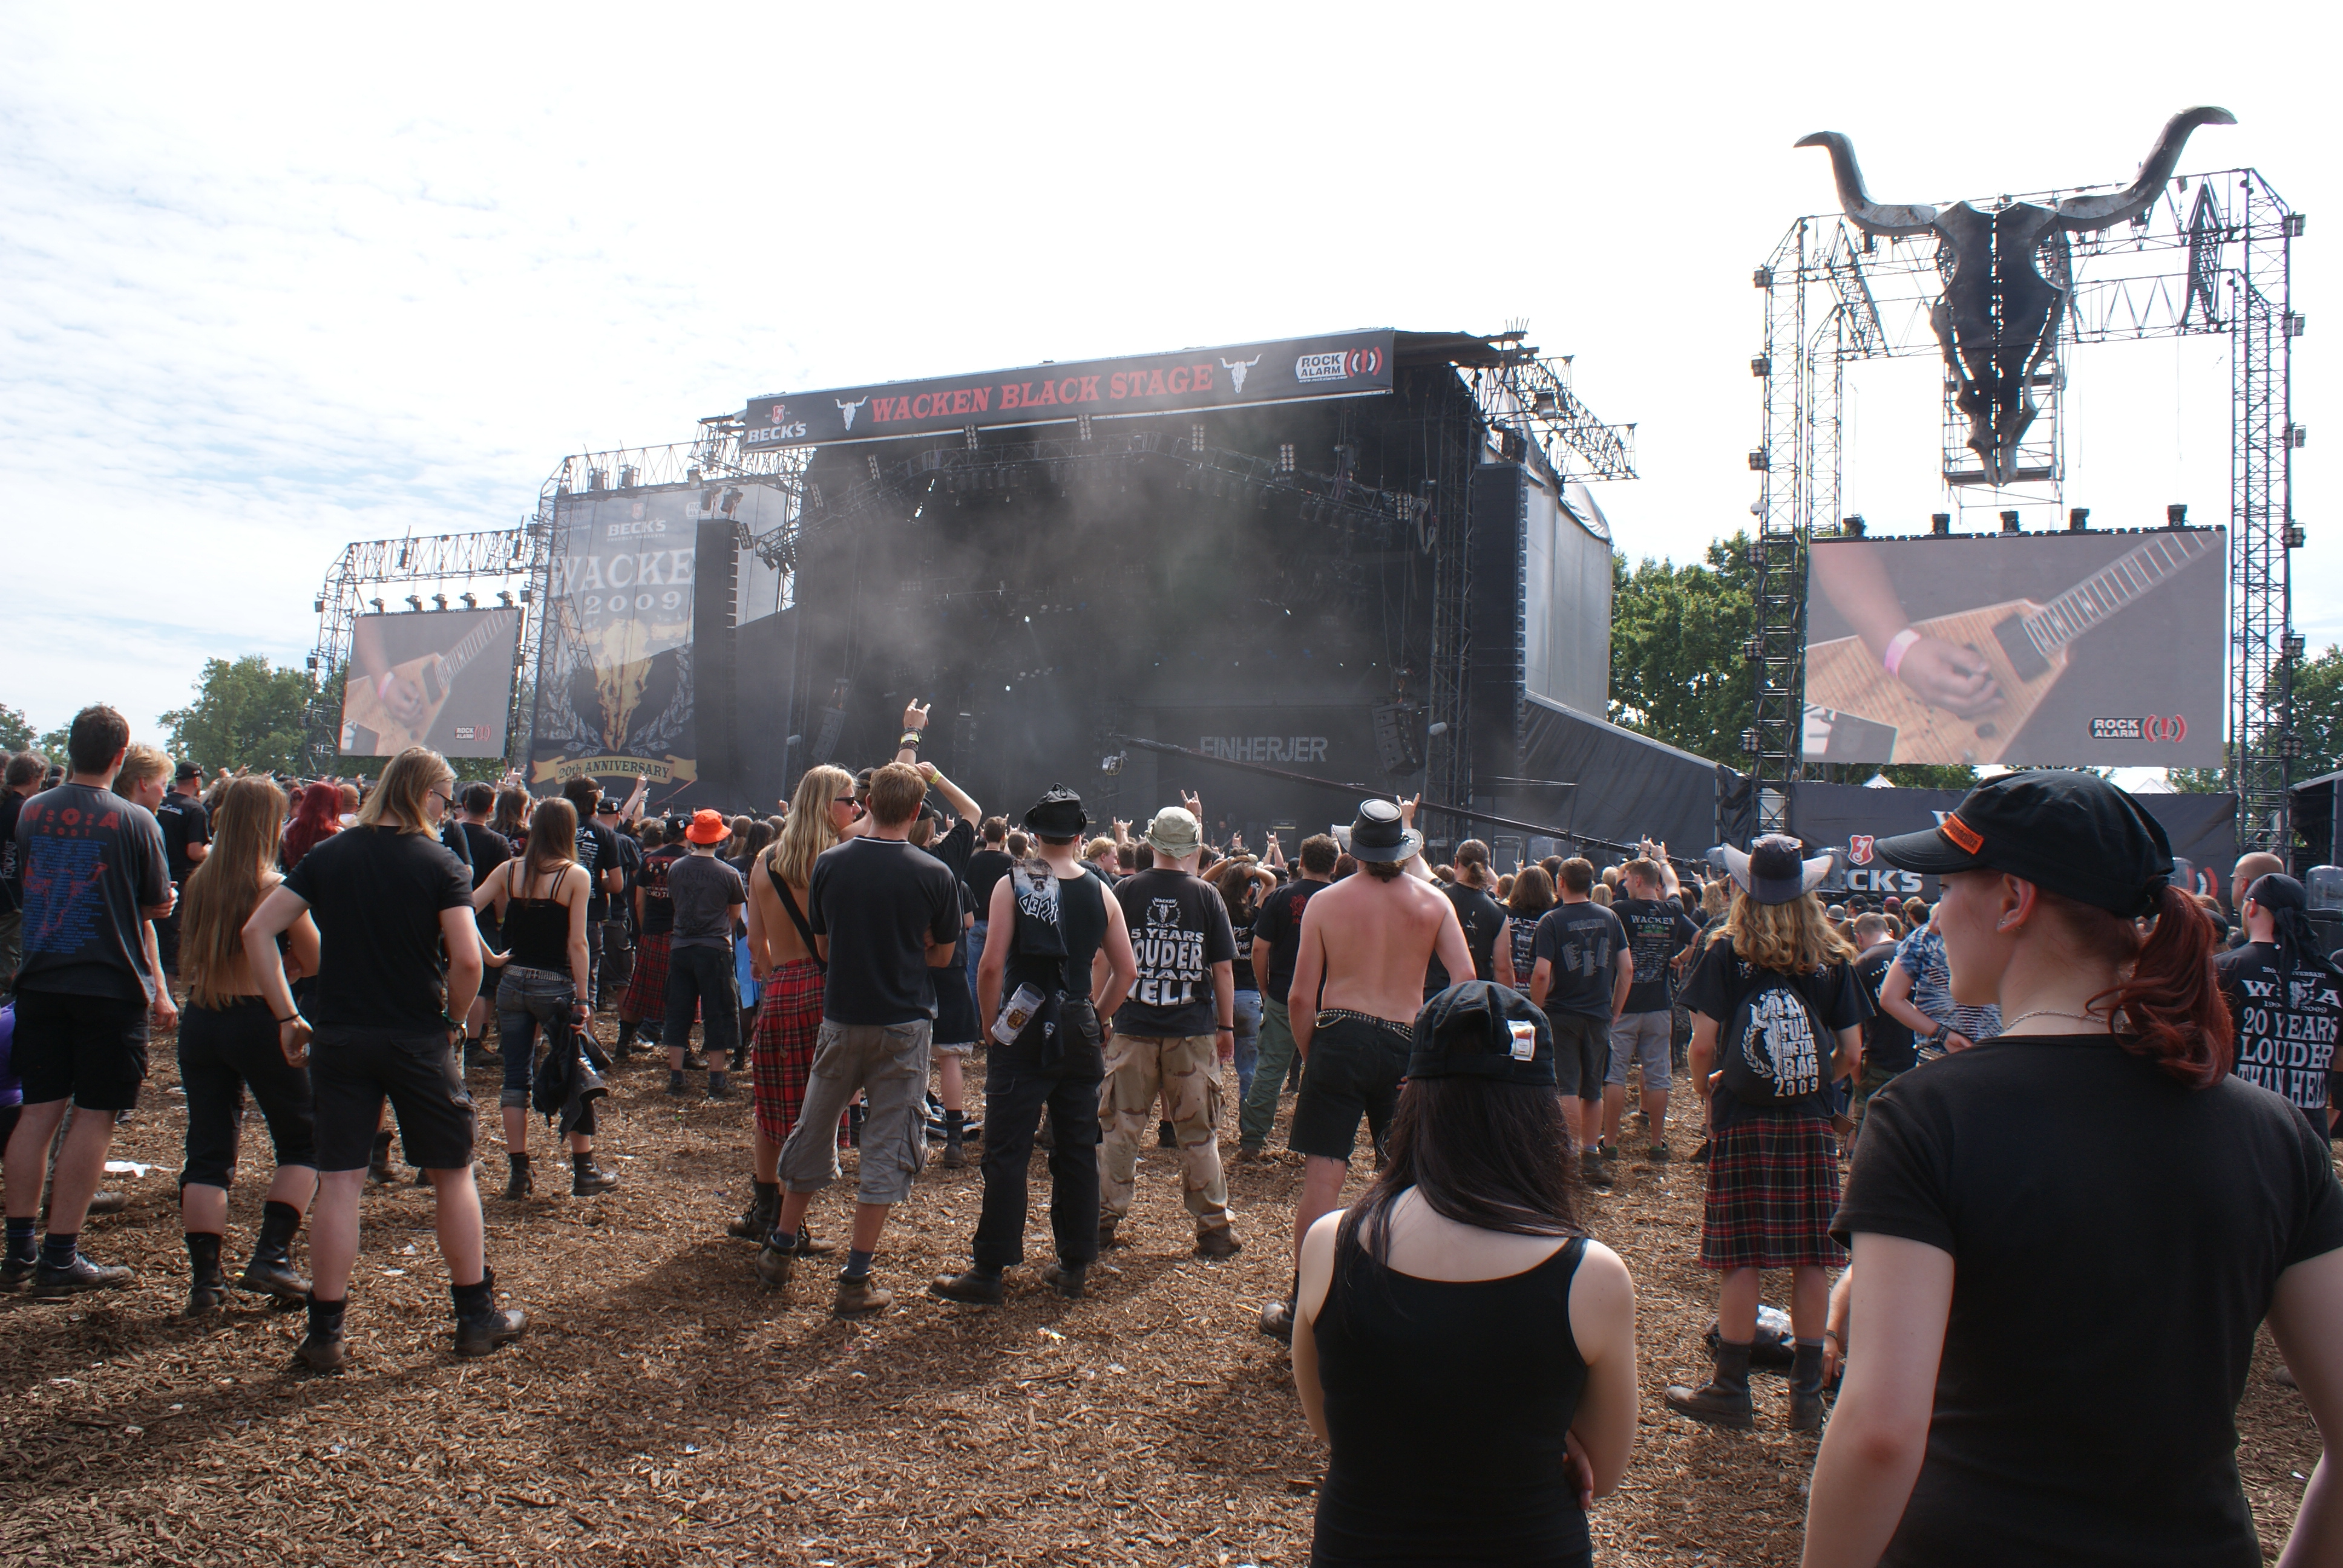 Wacken Heavy Metal German Phrasebook